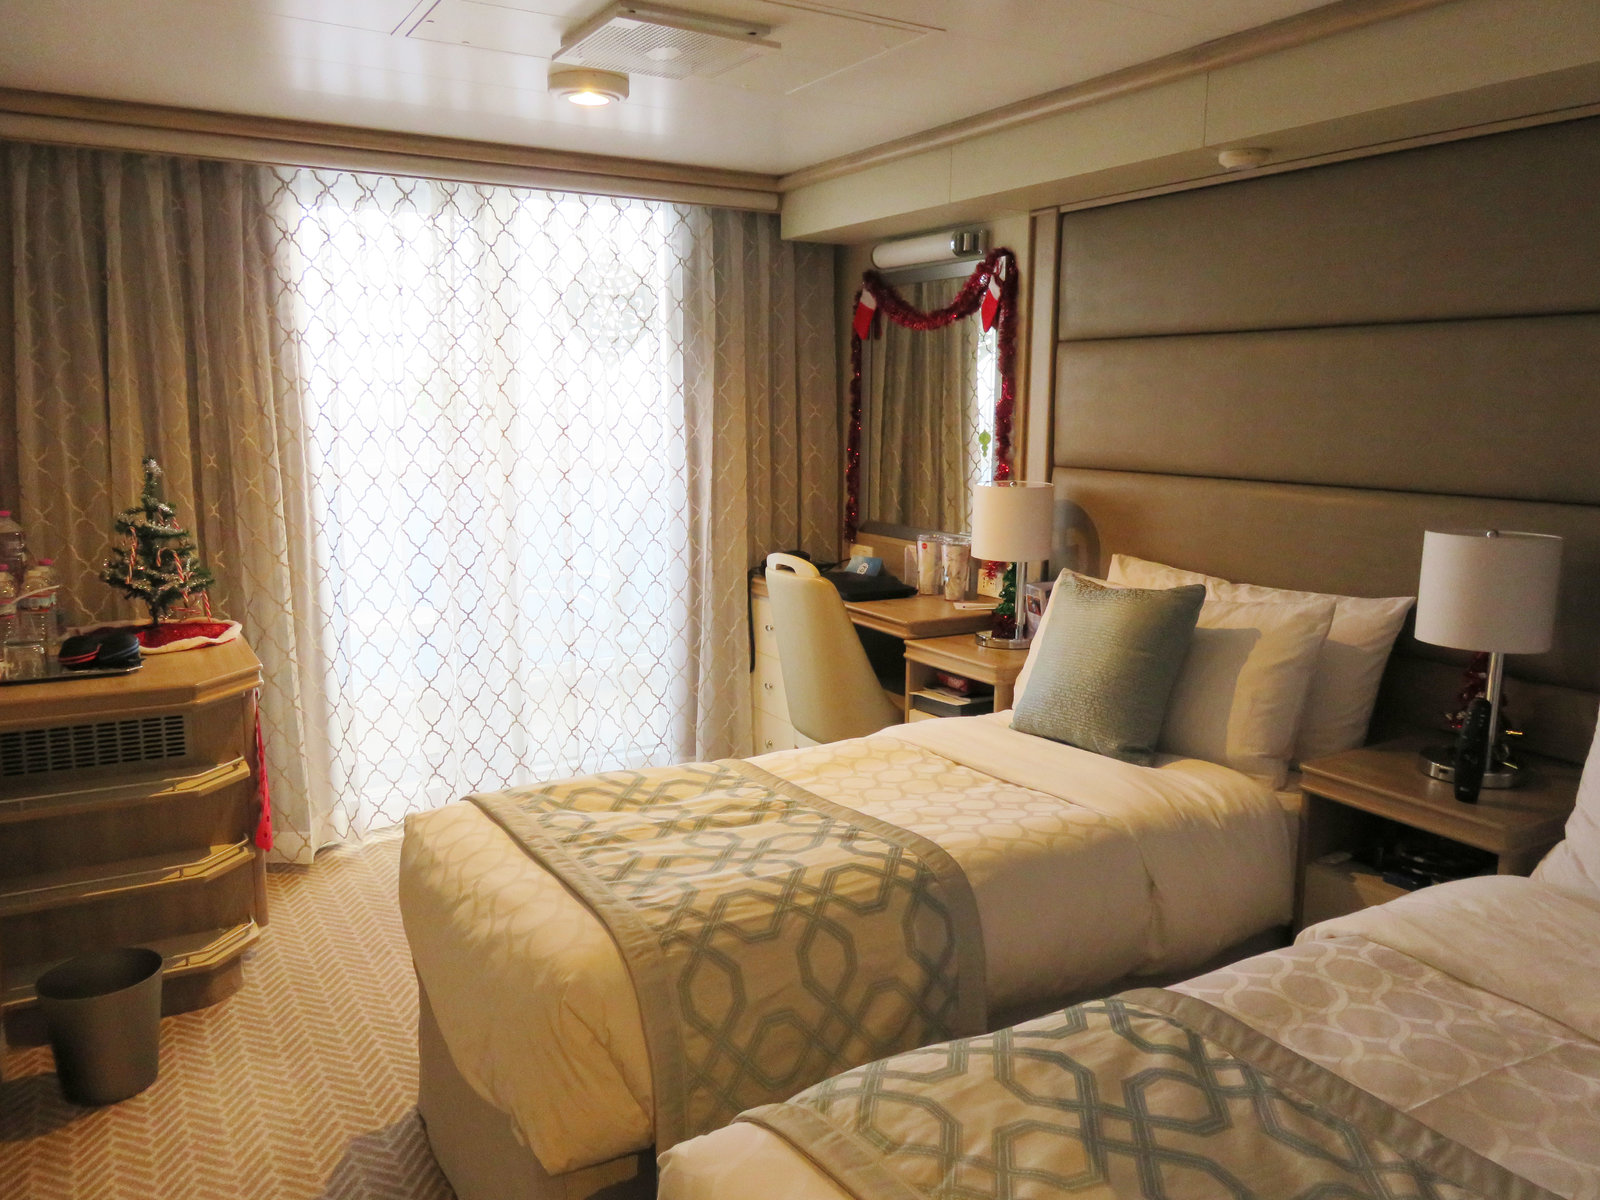 SKY Princess - Balcony cabin with twin beds